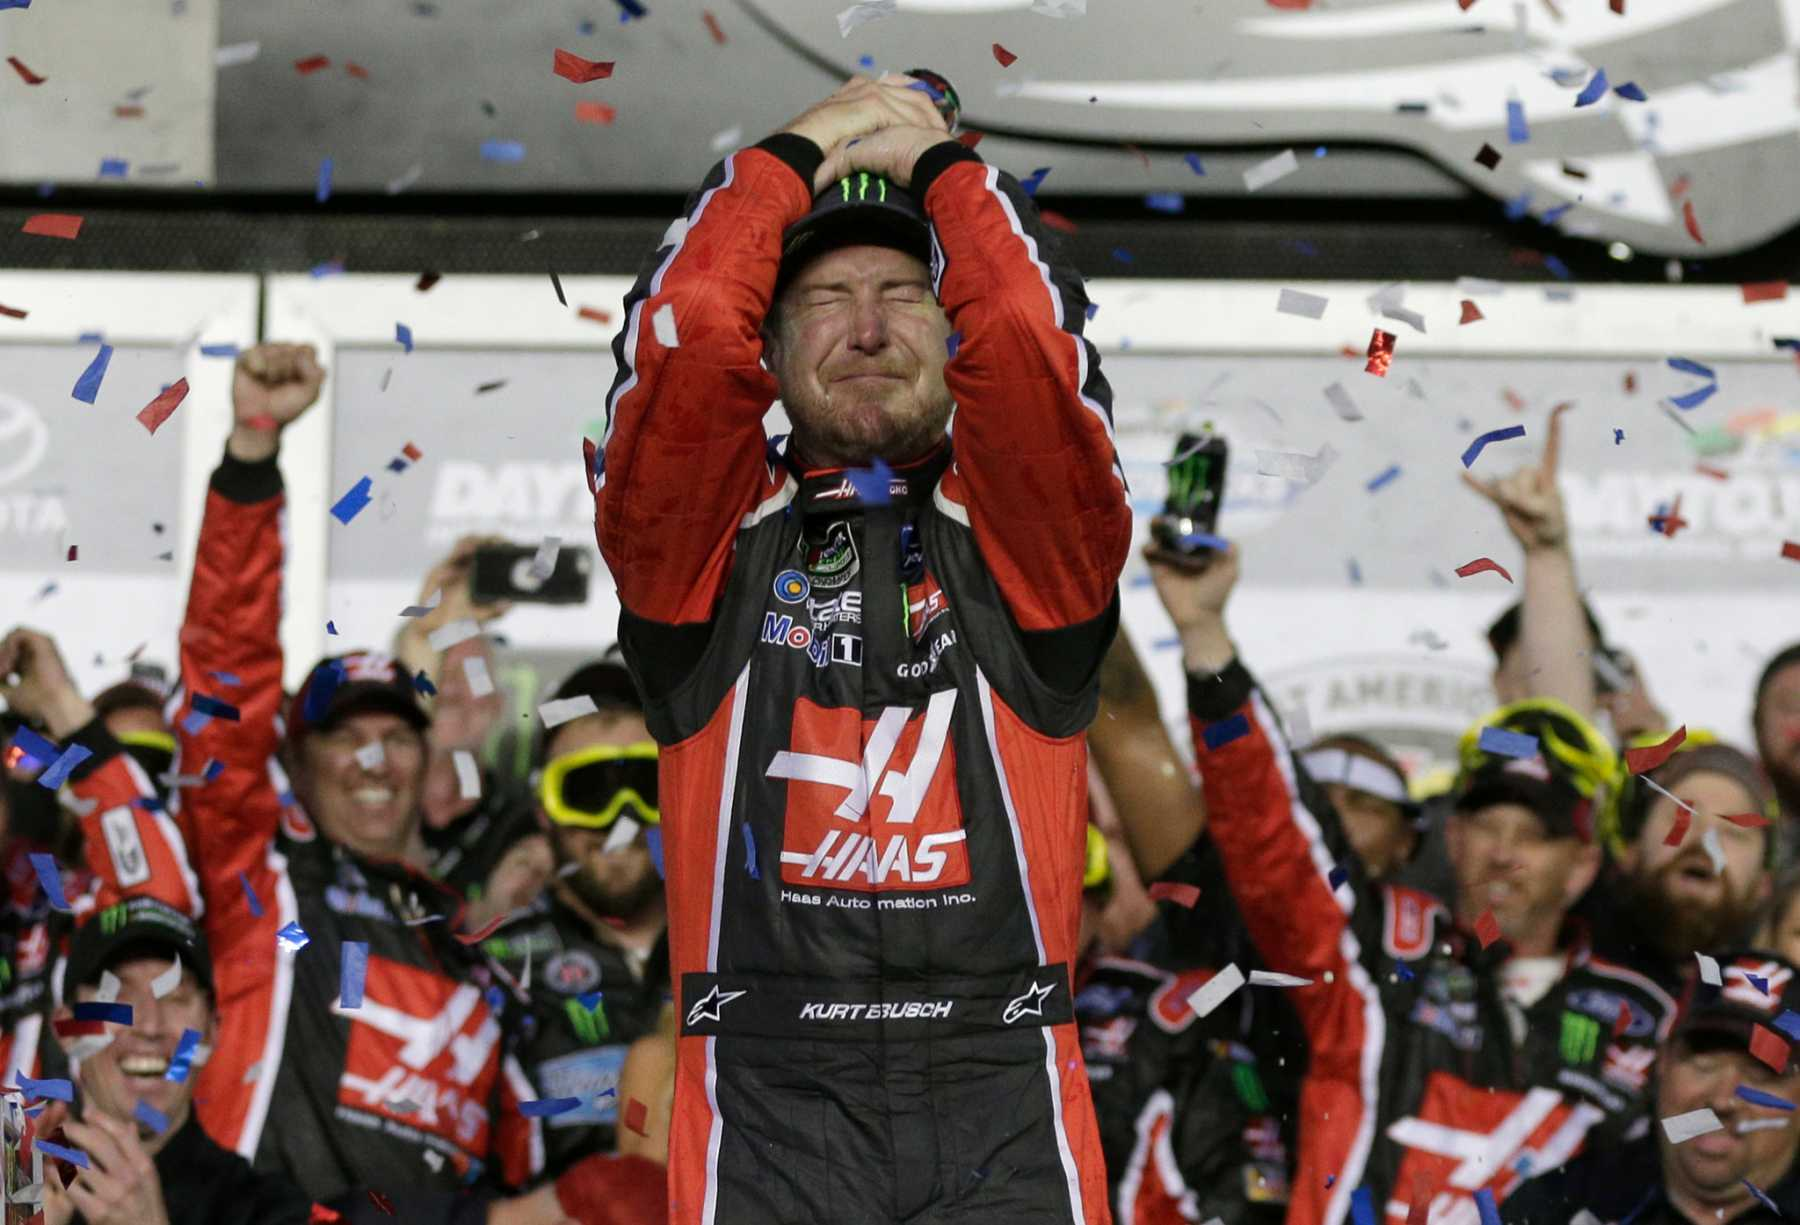 Kurt Busch Passes Kyle Larson On Last Lap To Win Daytona 500 | Kurt Busch